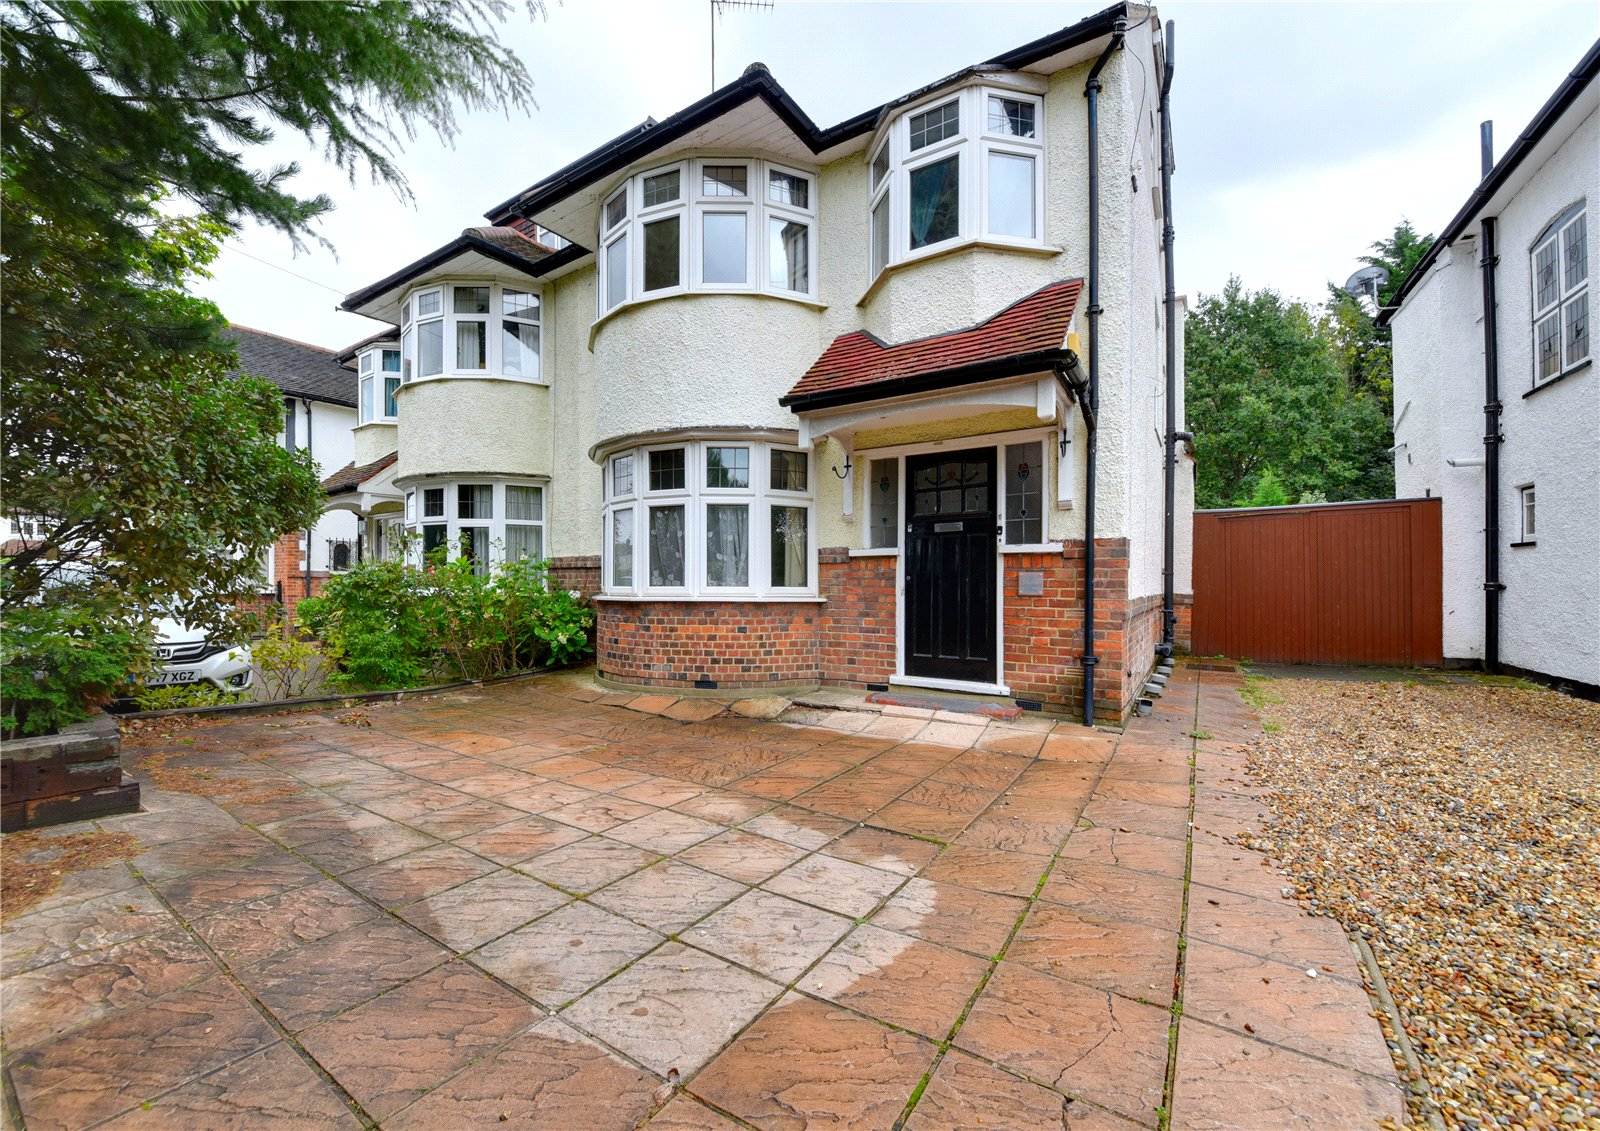 4 bed house to rent in Longland Drive, Totteridge 1